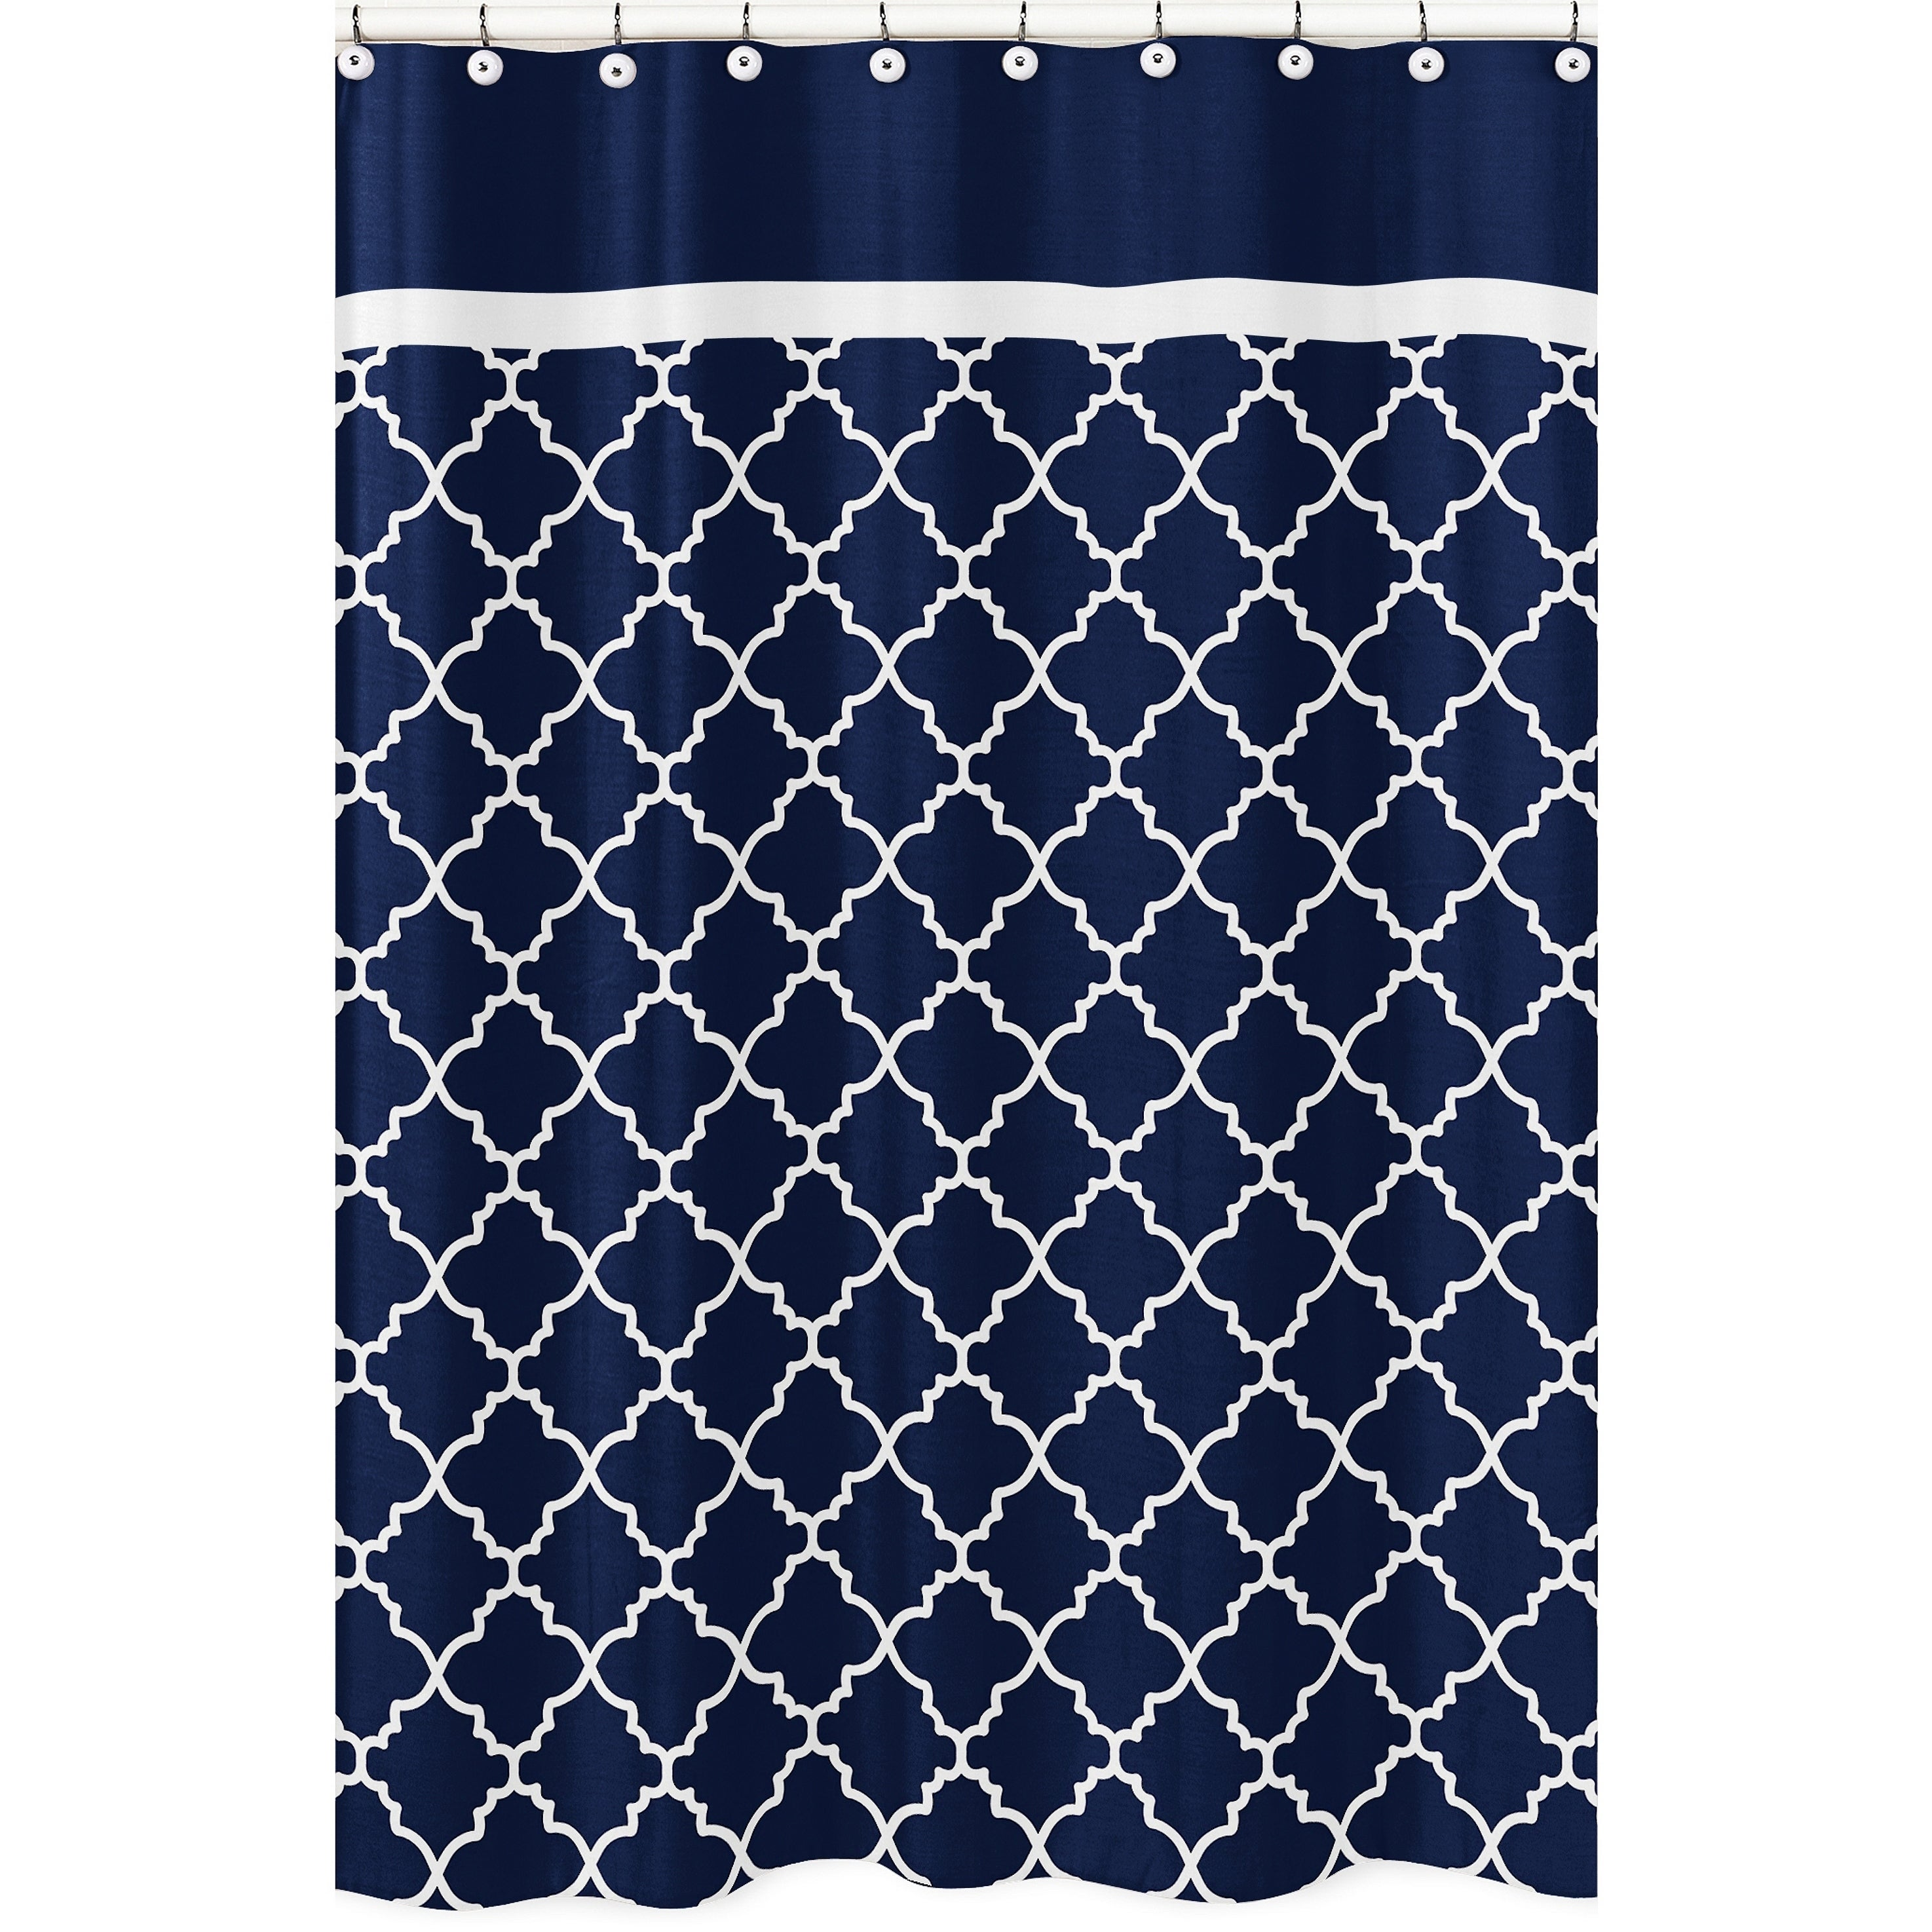 Sweet Jojo Designs Navy Blue And White Modern Trellis Lattice Collection Bathroom Fabric Bath Shower Curtain